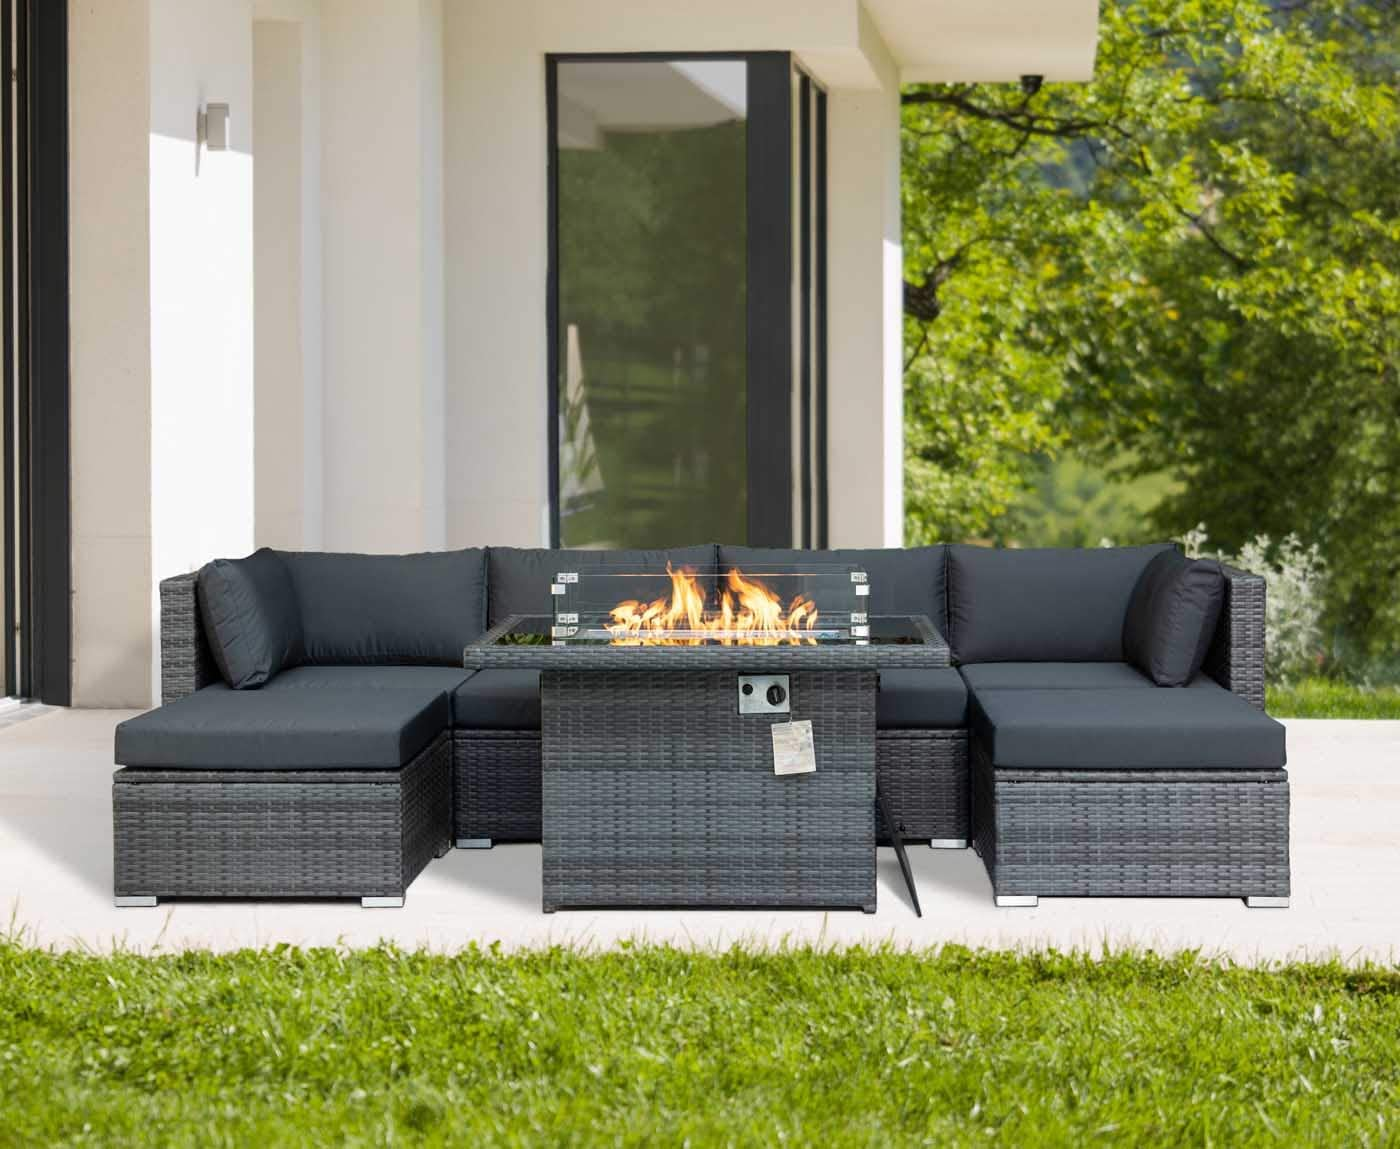 Modern Patio Furnitures Outdoor Sectional PE Wicker Sofa Sets with Waterproof Steel Frame & Thicken Charcoal Cushions & CSA Aproved Aluminum Propane Fire Pit Table 55000 BTU (Wicker Gray-7 Pcs)